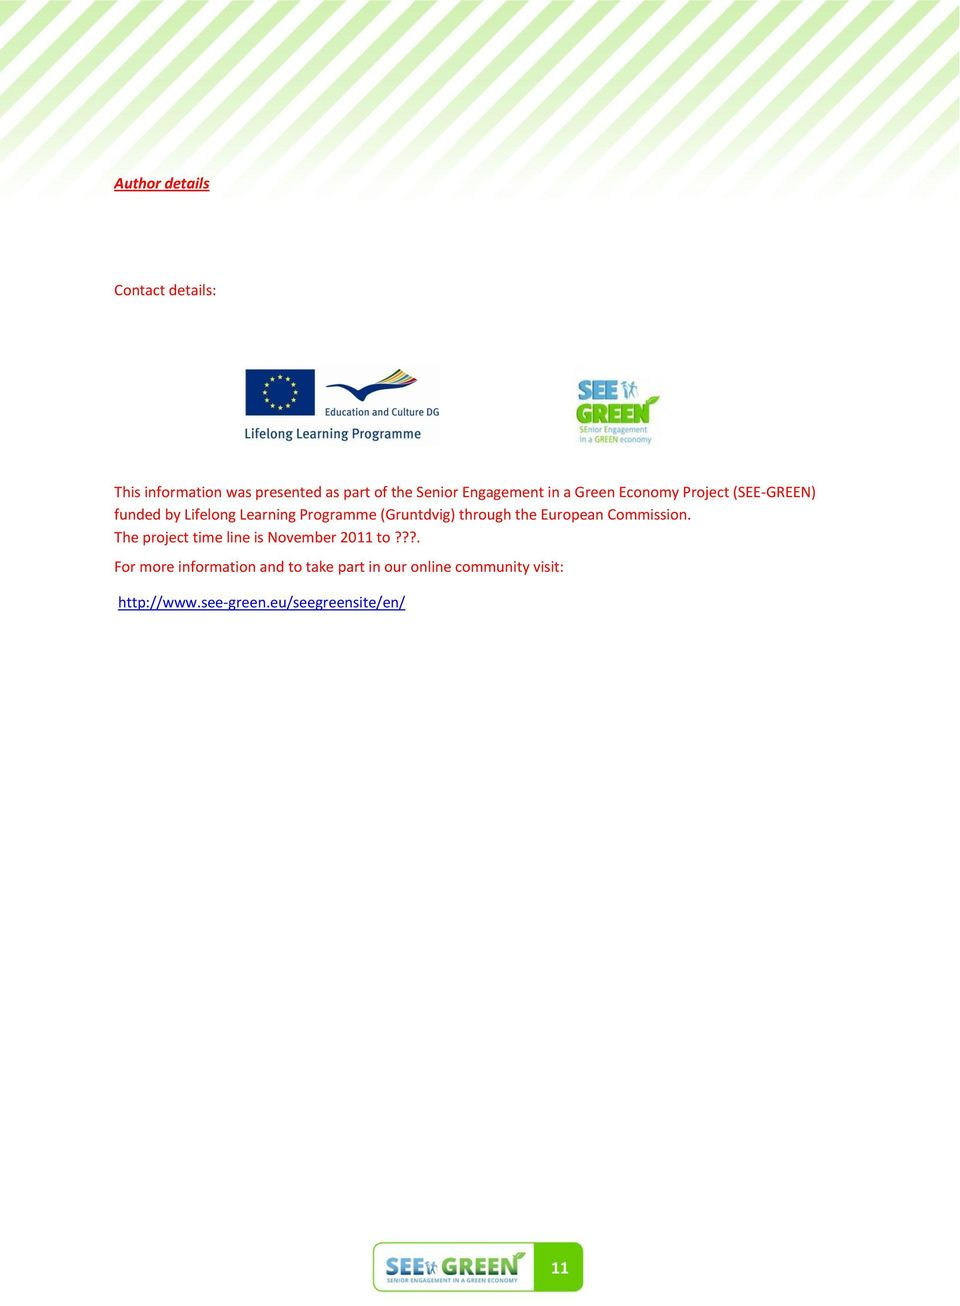 (Gruntdvig) through the European Commission. The project time line is November 2011 to?